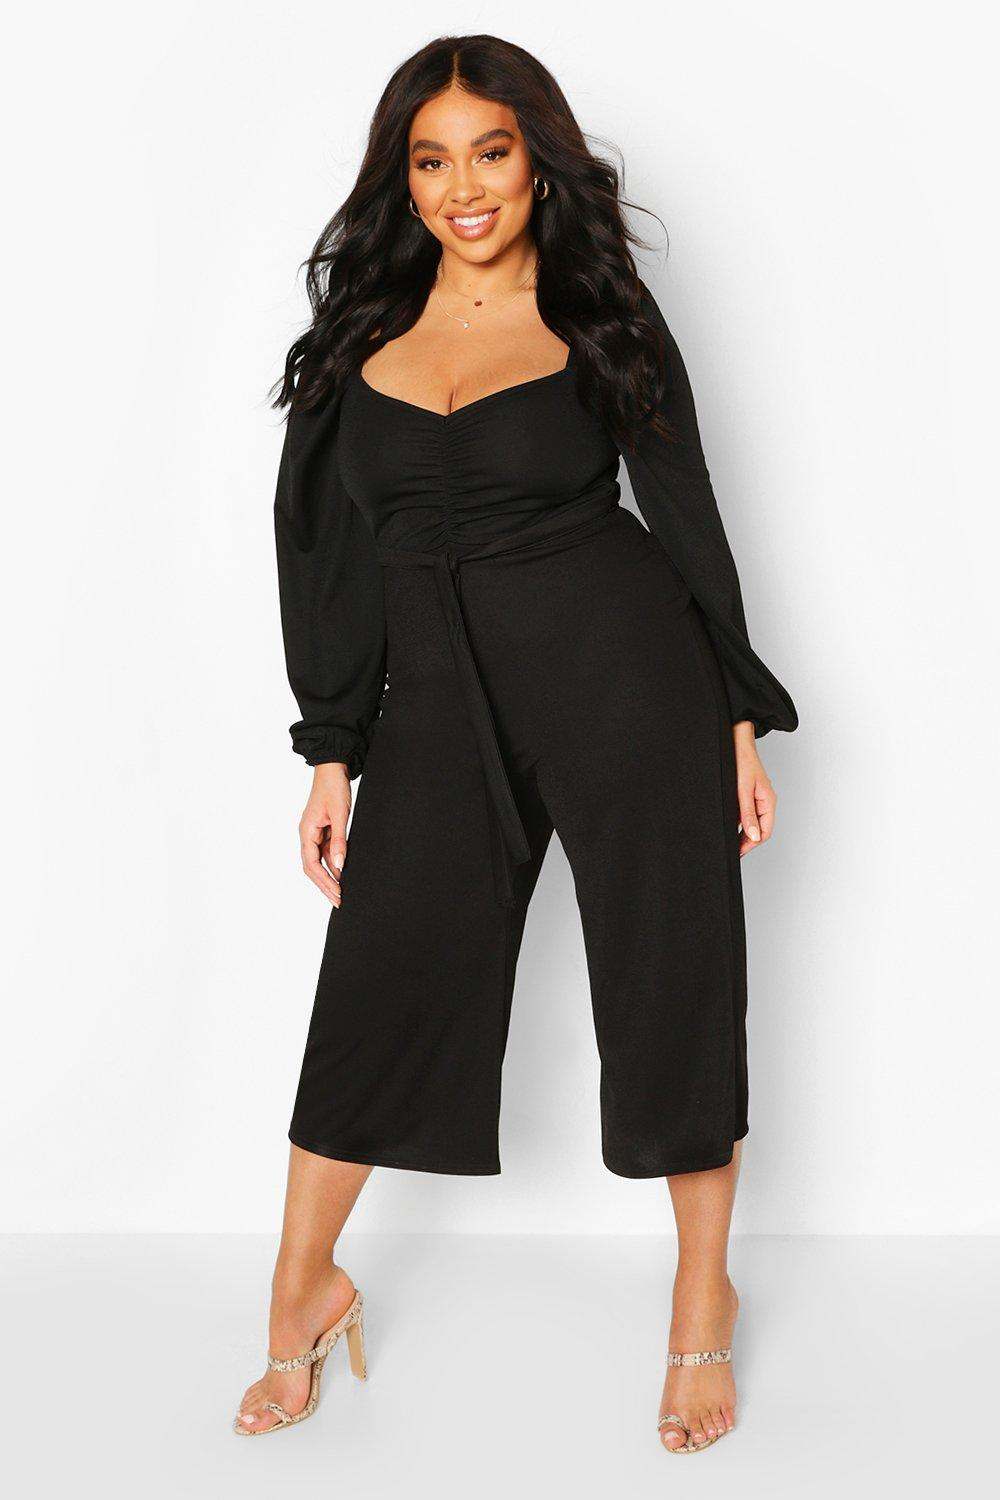 boohoo Womens Plus Puff Sleeve Belted Jumpsuit - Black - 20, Black